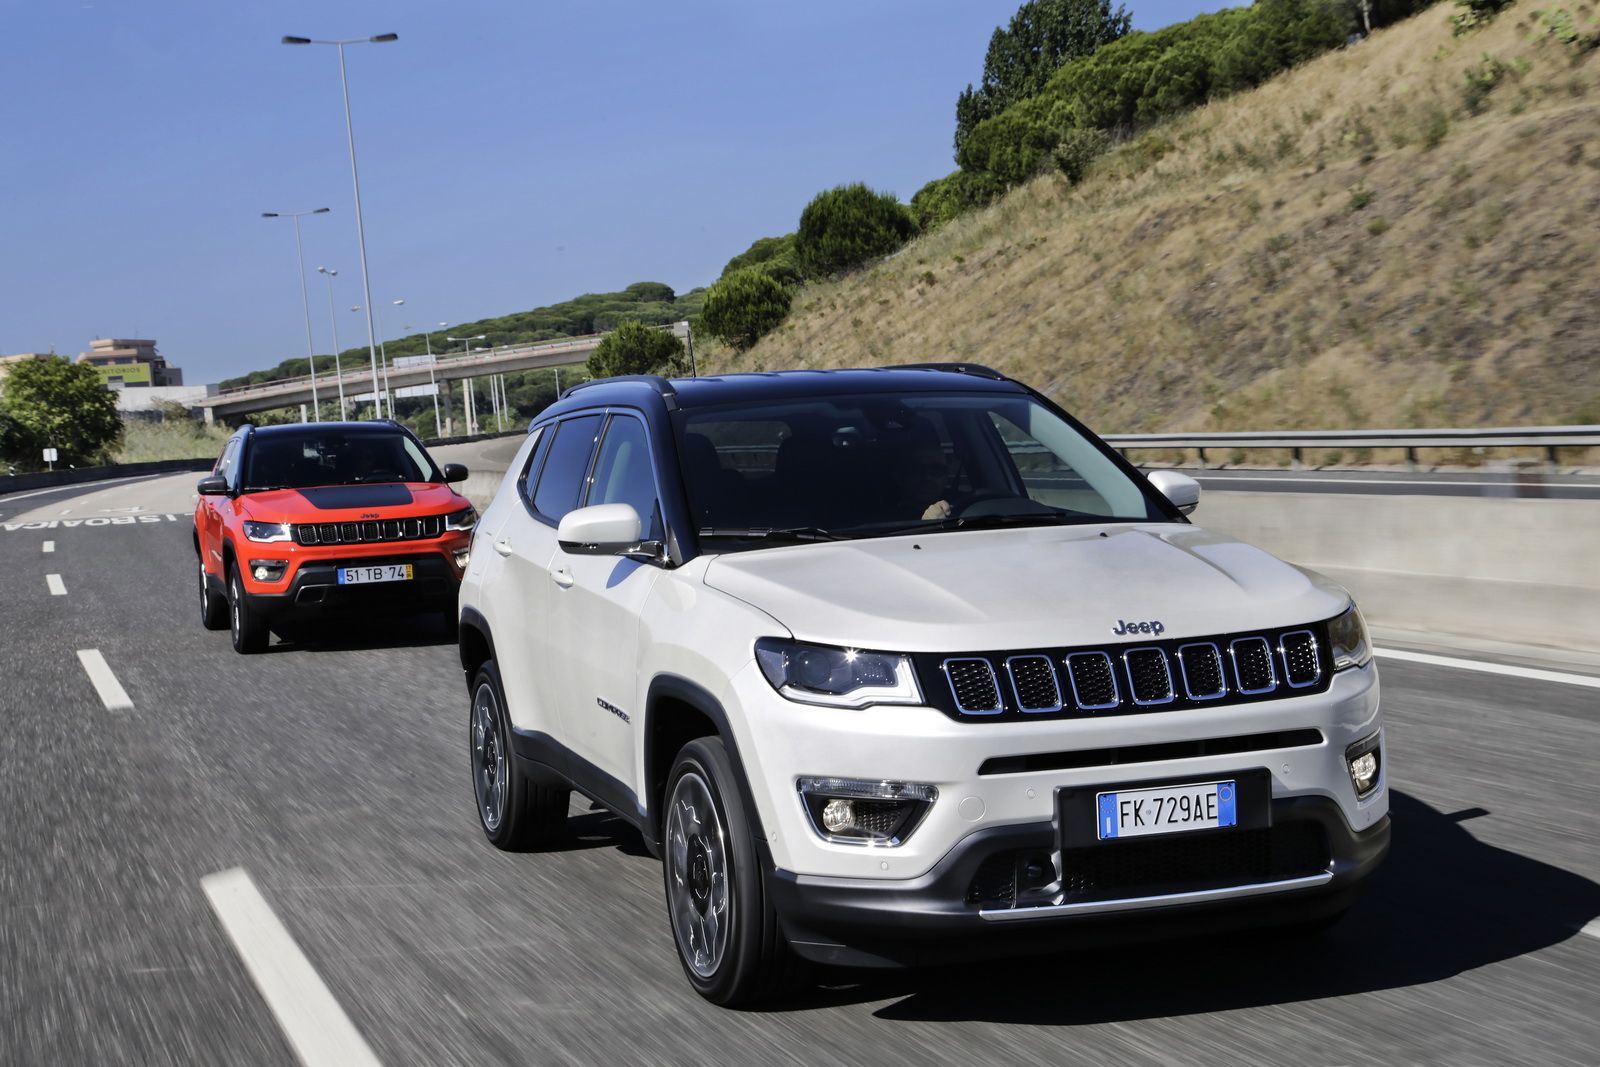 New Jeep Compass Officially Launched In Europe 38 Photos In 2020 Jeep Compass Jeep White Jeep